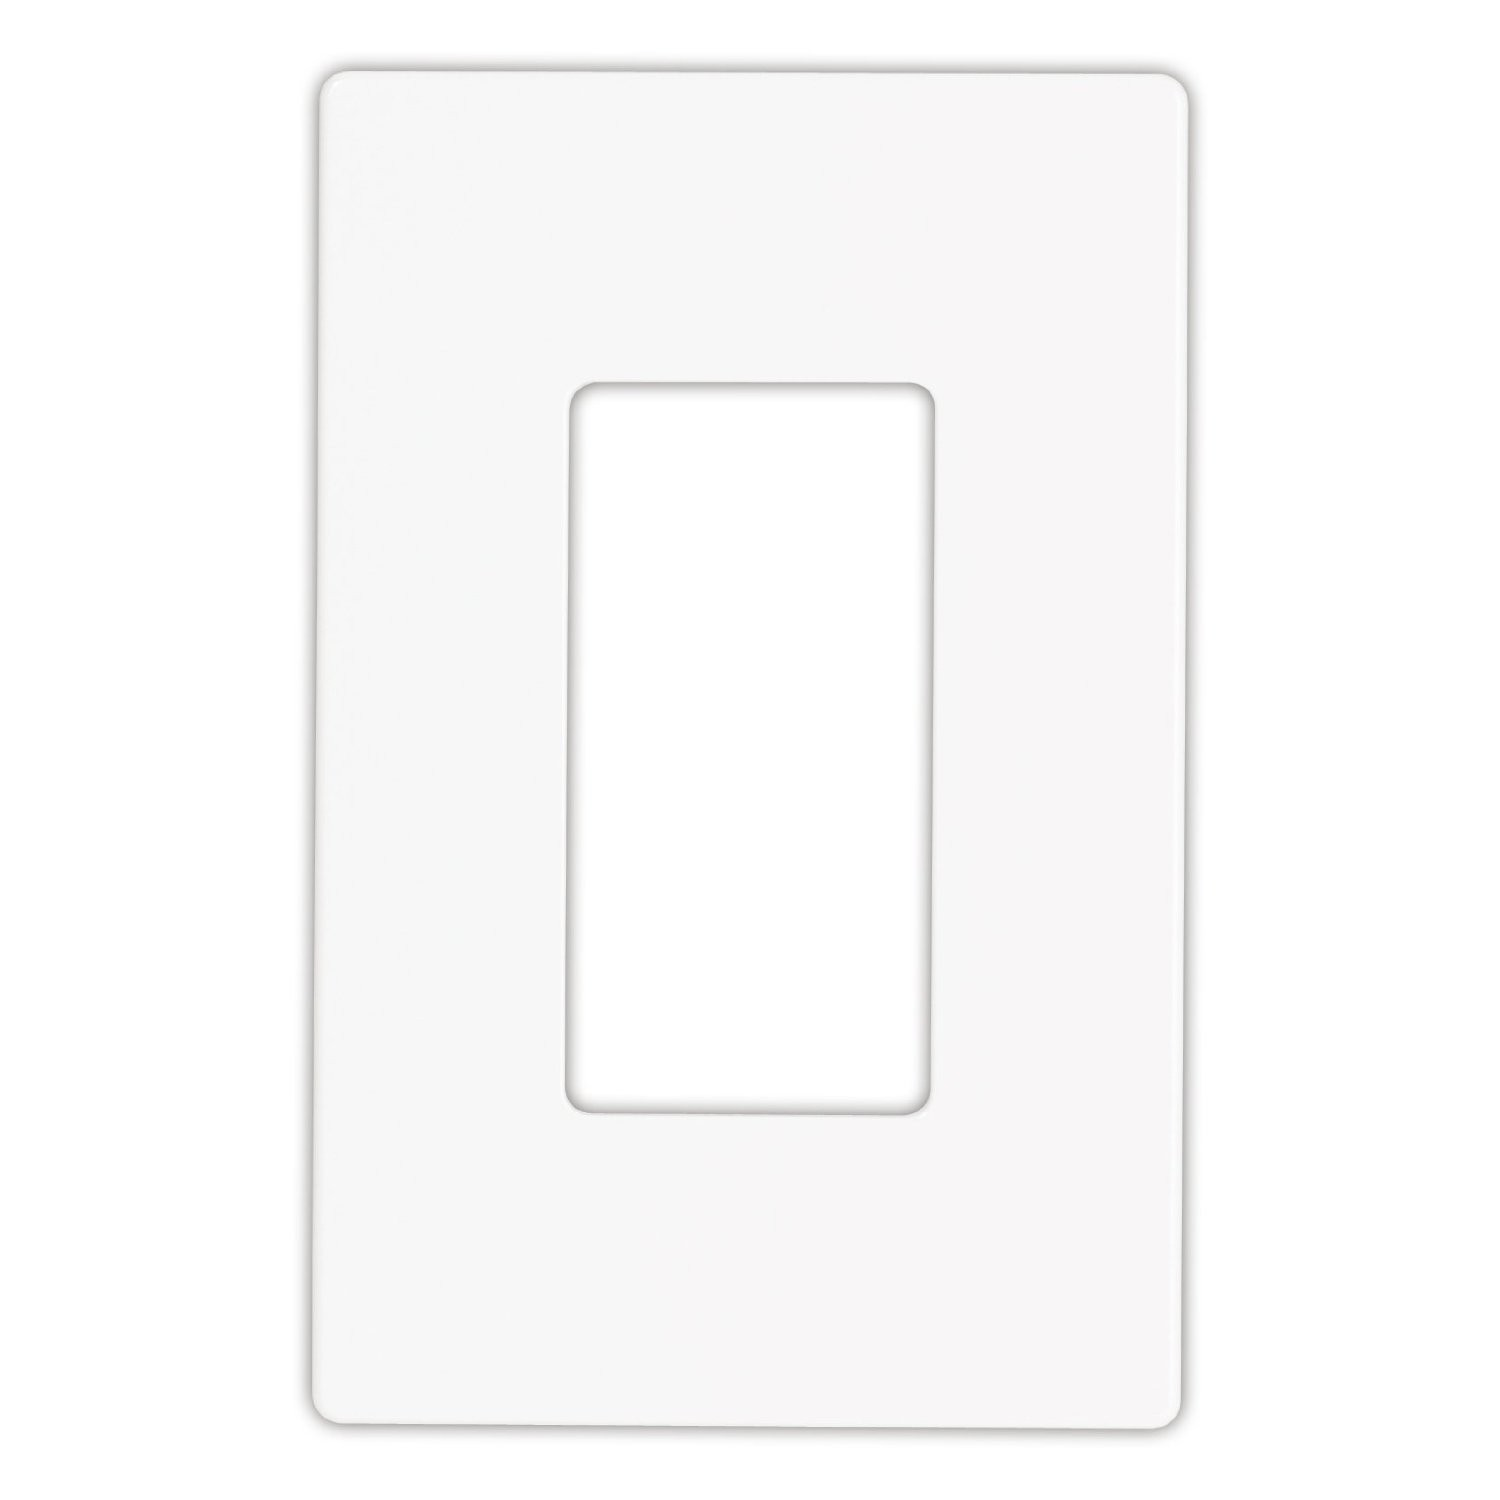 White Electrical Outlet Covers Cooper Wiring 9521Ws Electrical Wall Plate Aspire Midsized